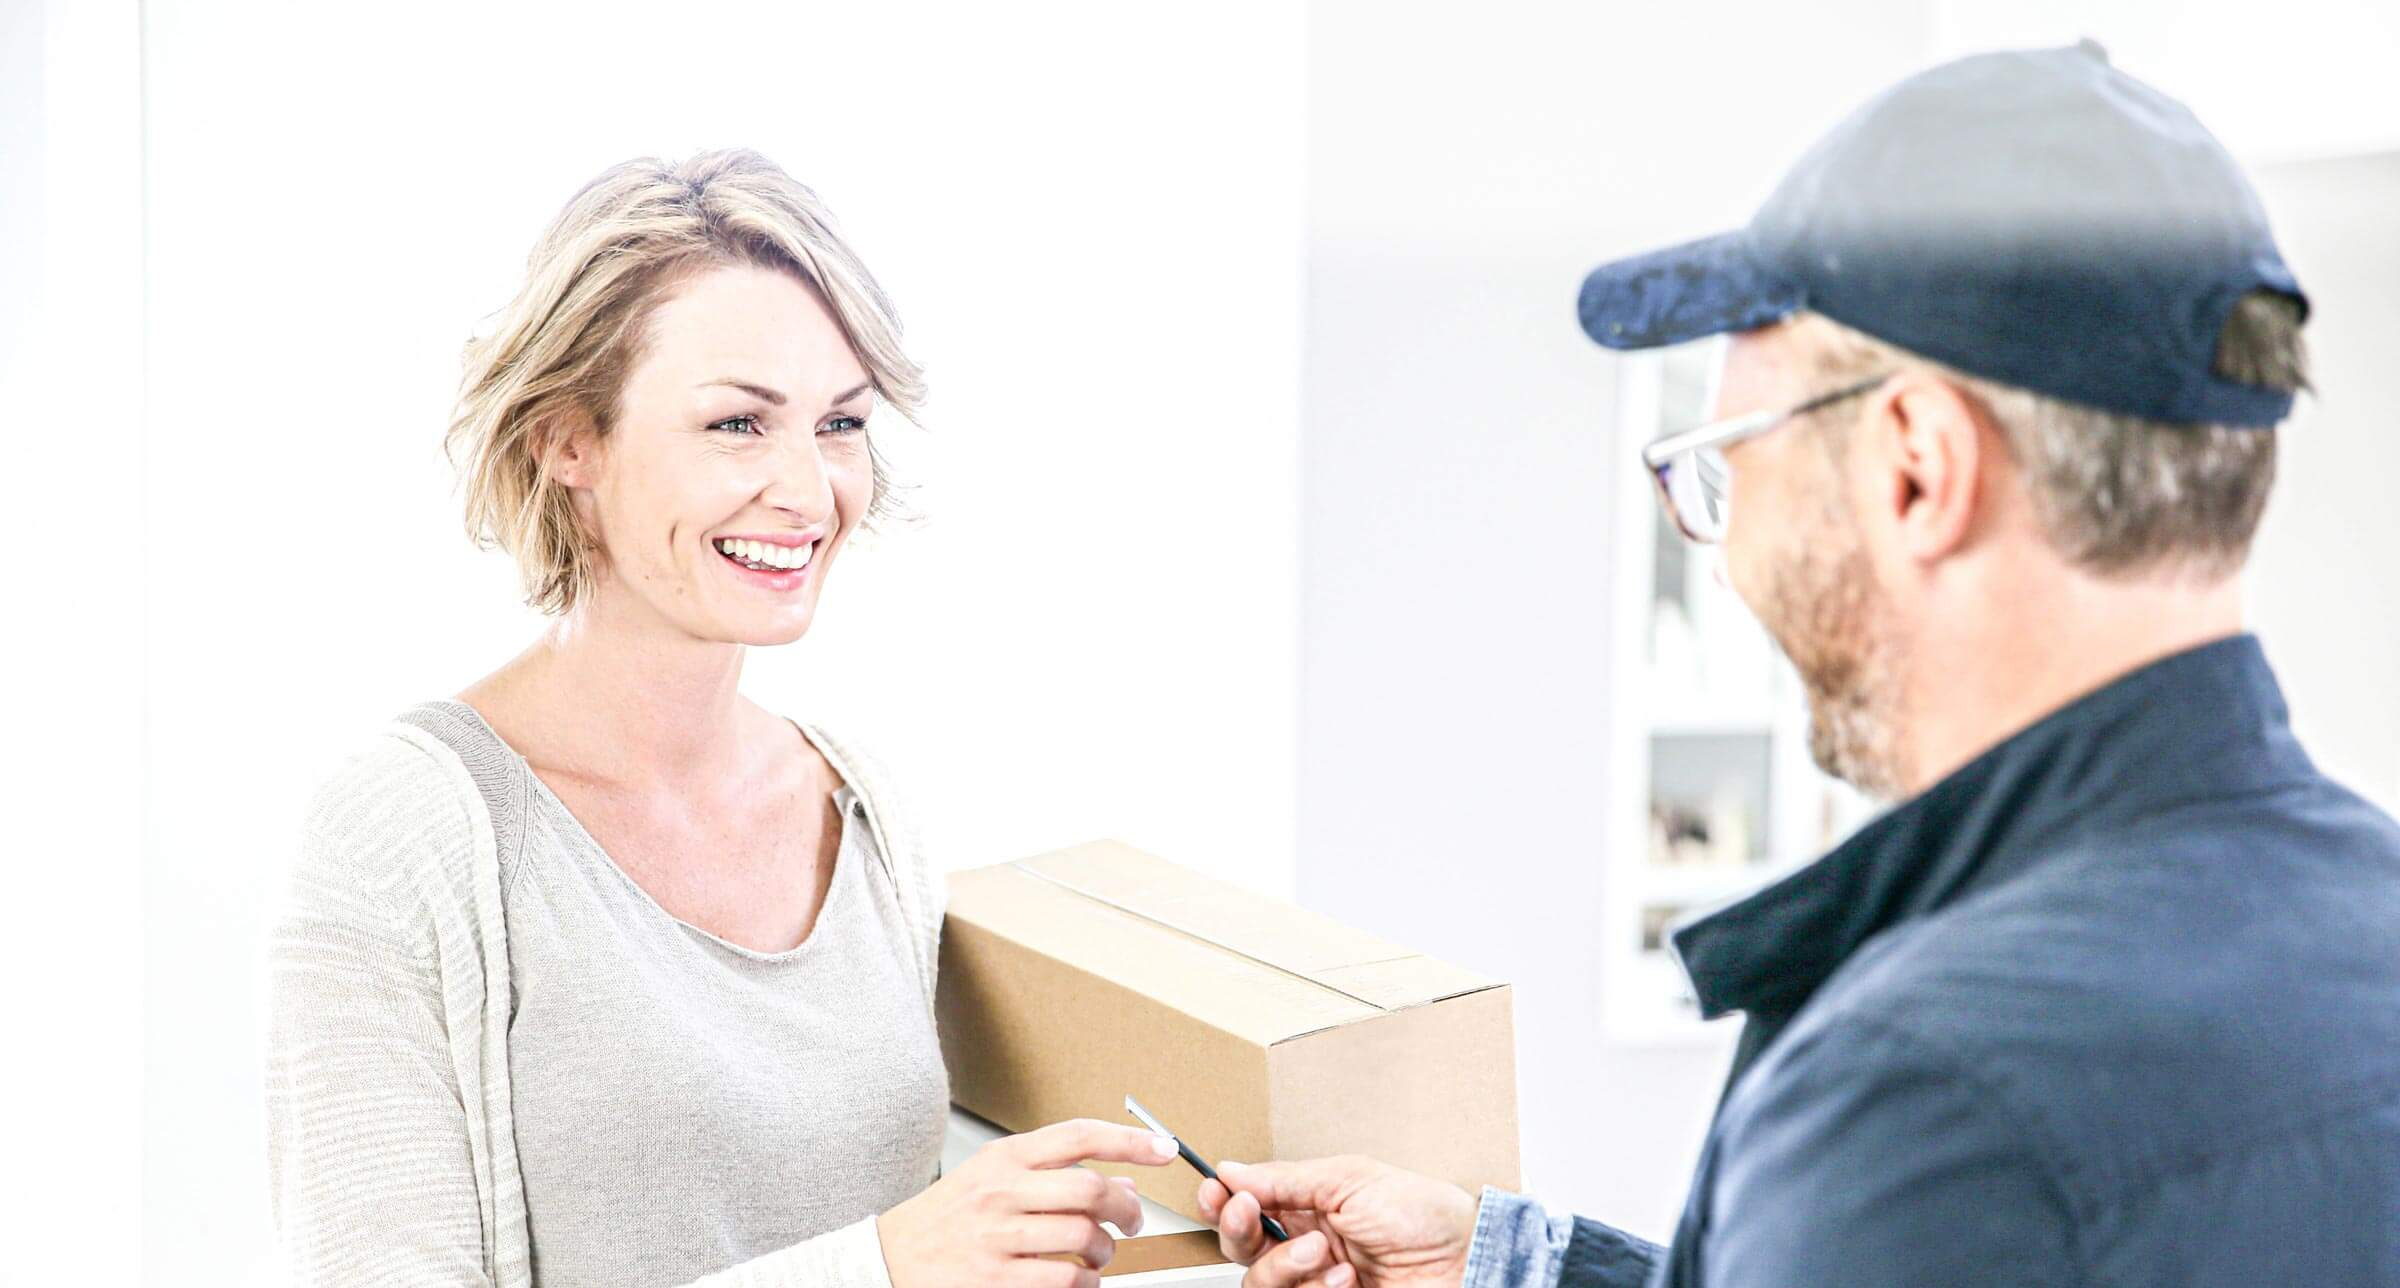 Man delivering woman parcel image